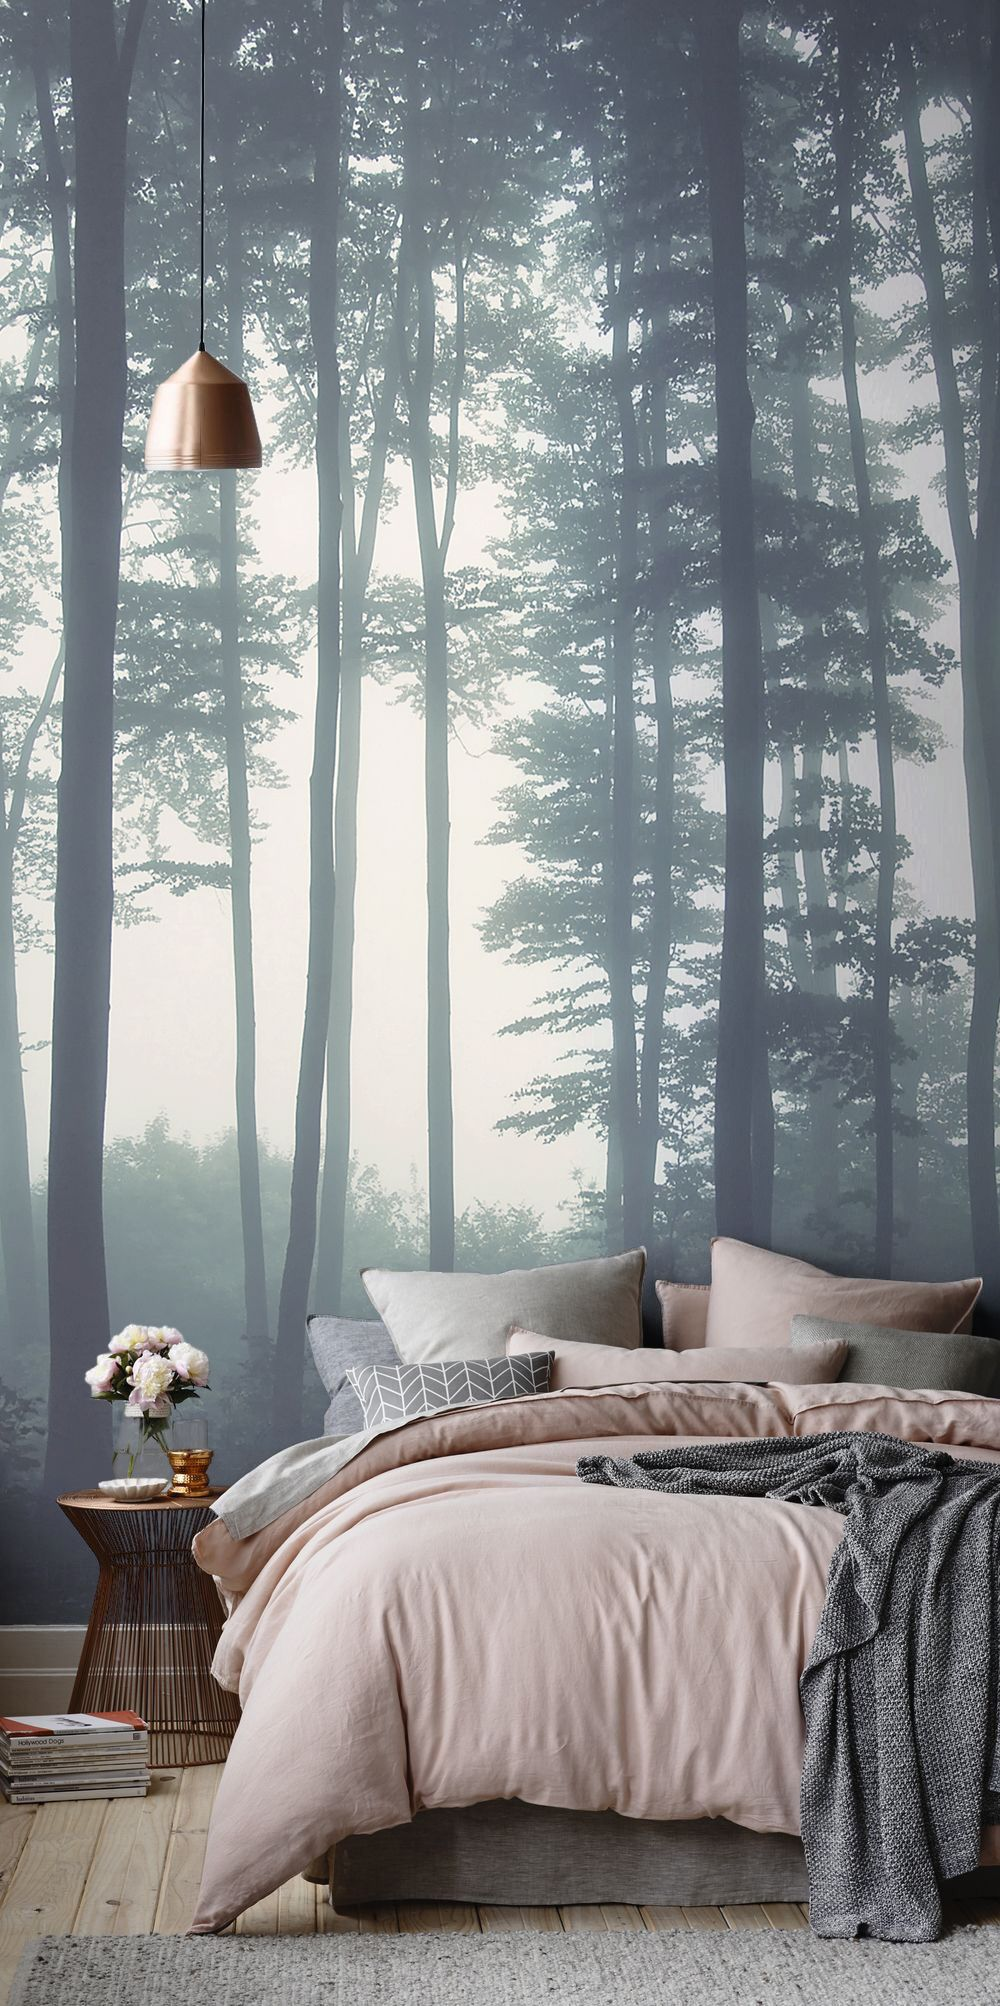 . Sea of Trees Forest Mural Wallpaper   Misty Forest   MuralsWallpaper